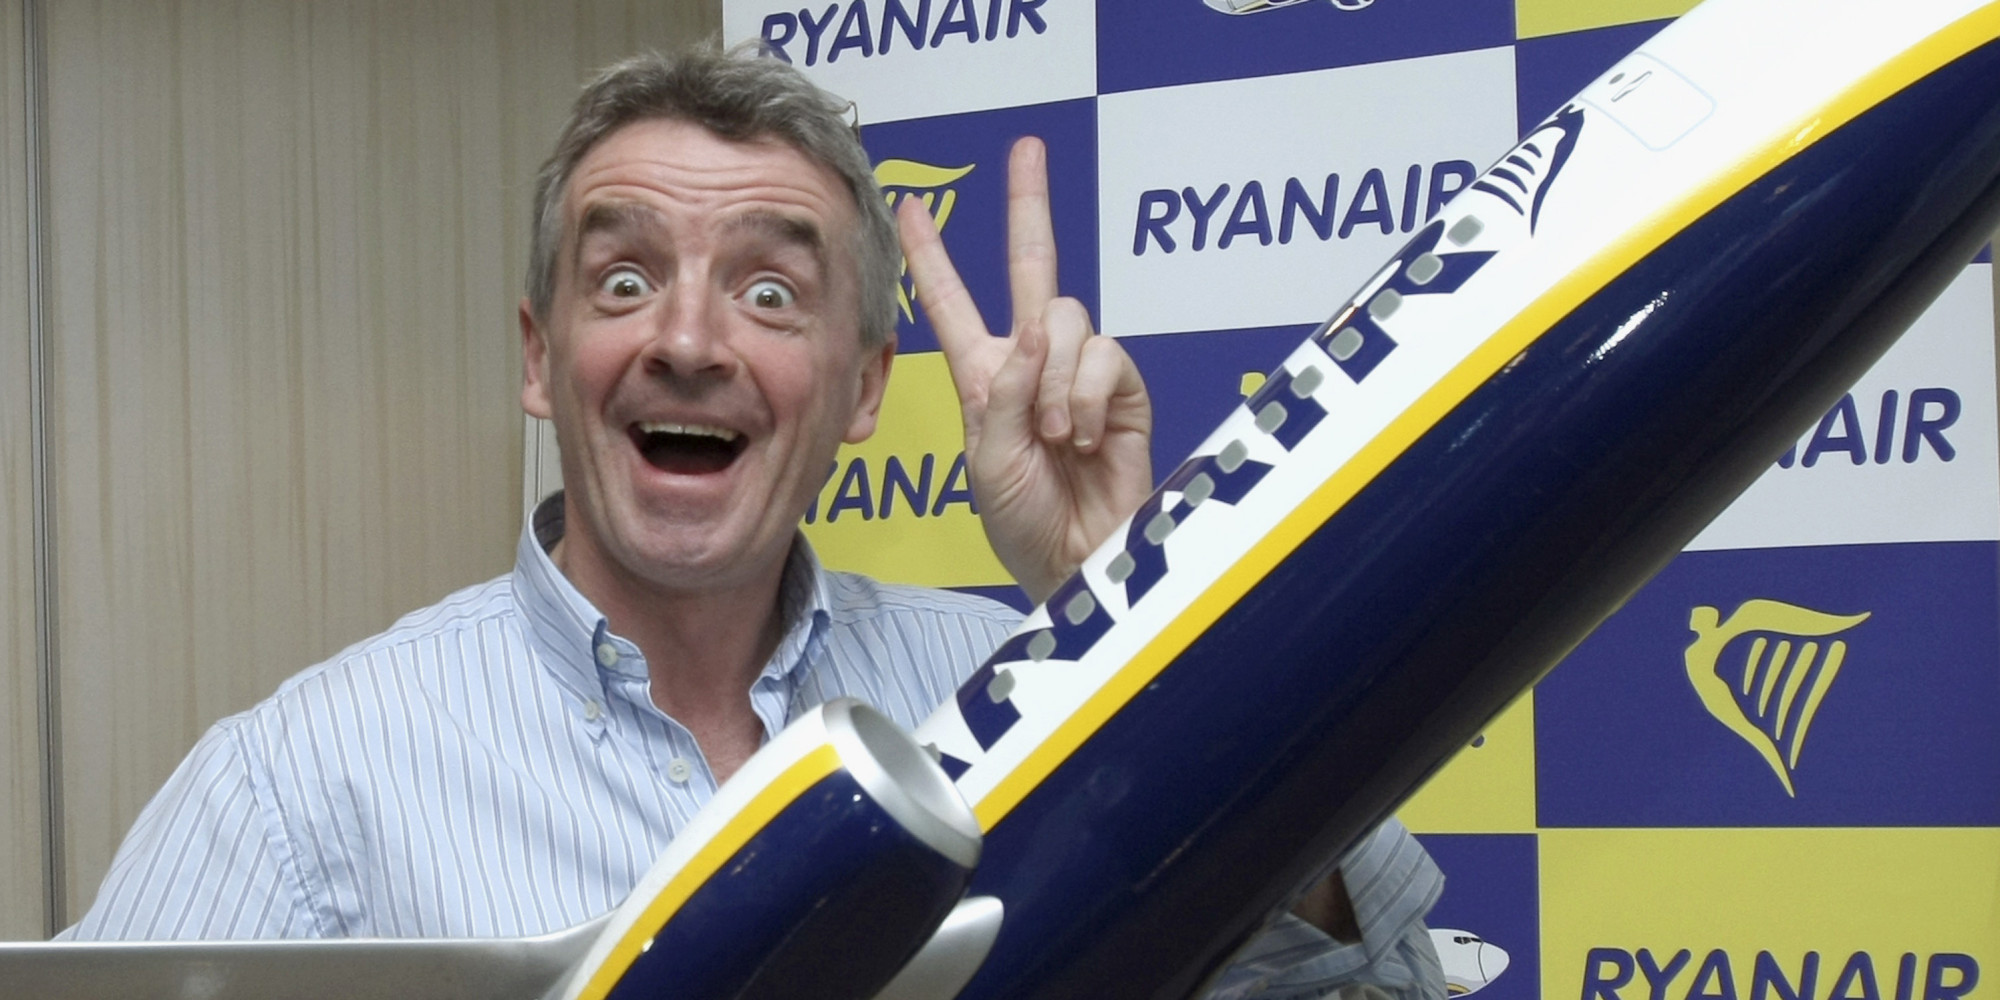 micheal o leary transformational leadership in ryan air Michael kevin o'leary is an irish businessman and the chief executive officer of the irish airline ryanair he is one of ireland's wealthiest businessmen early life.